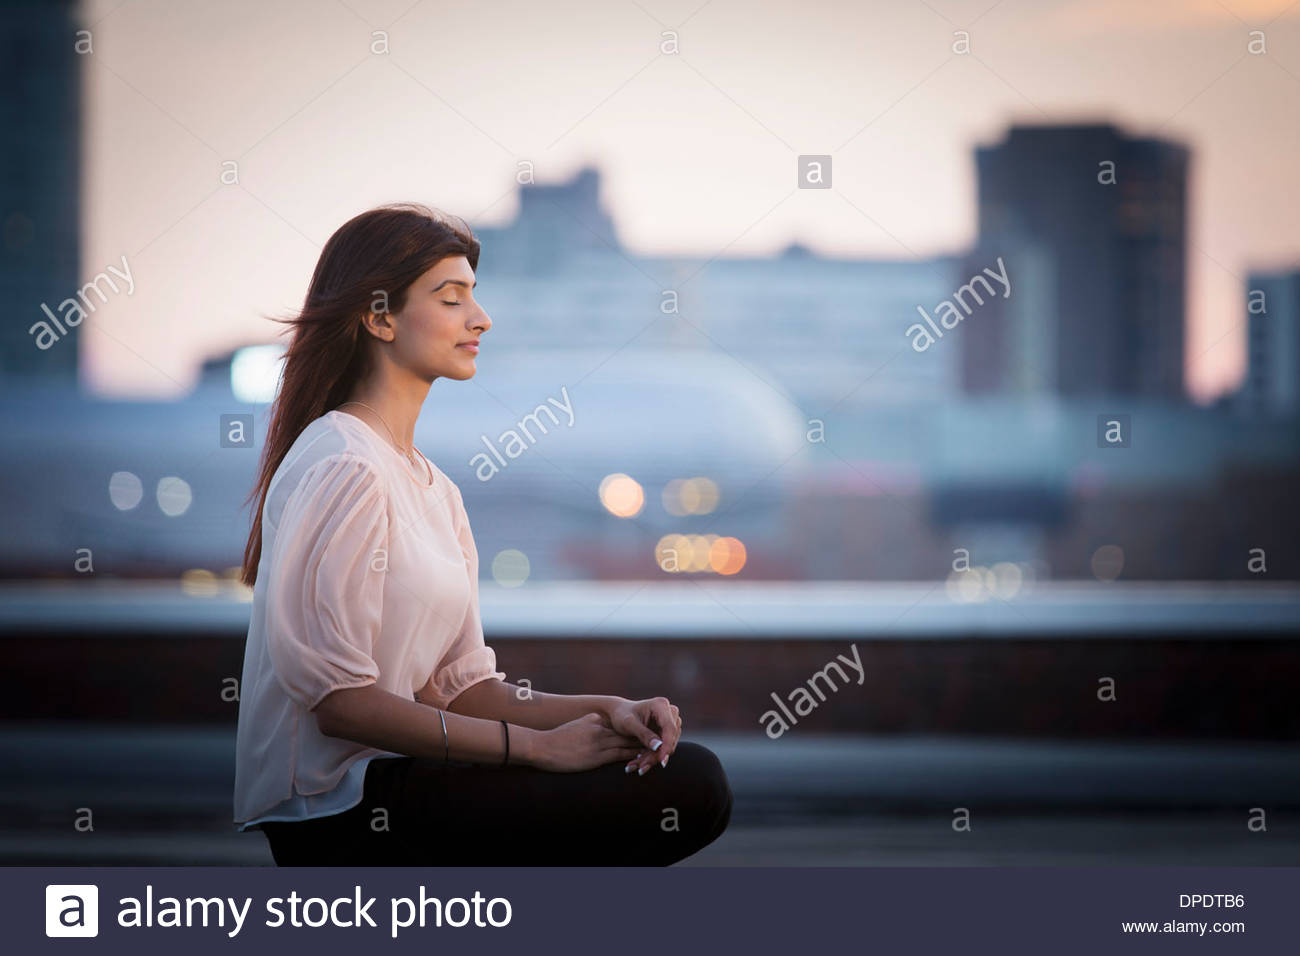 Woman meditating on rooftop - Stock Image